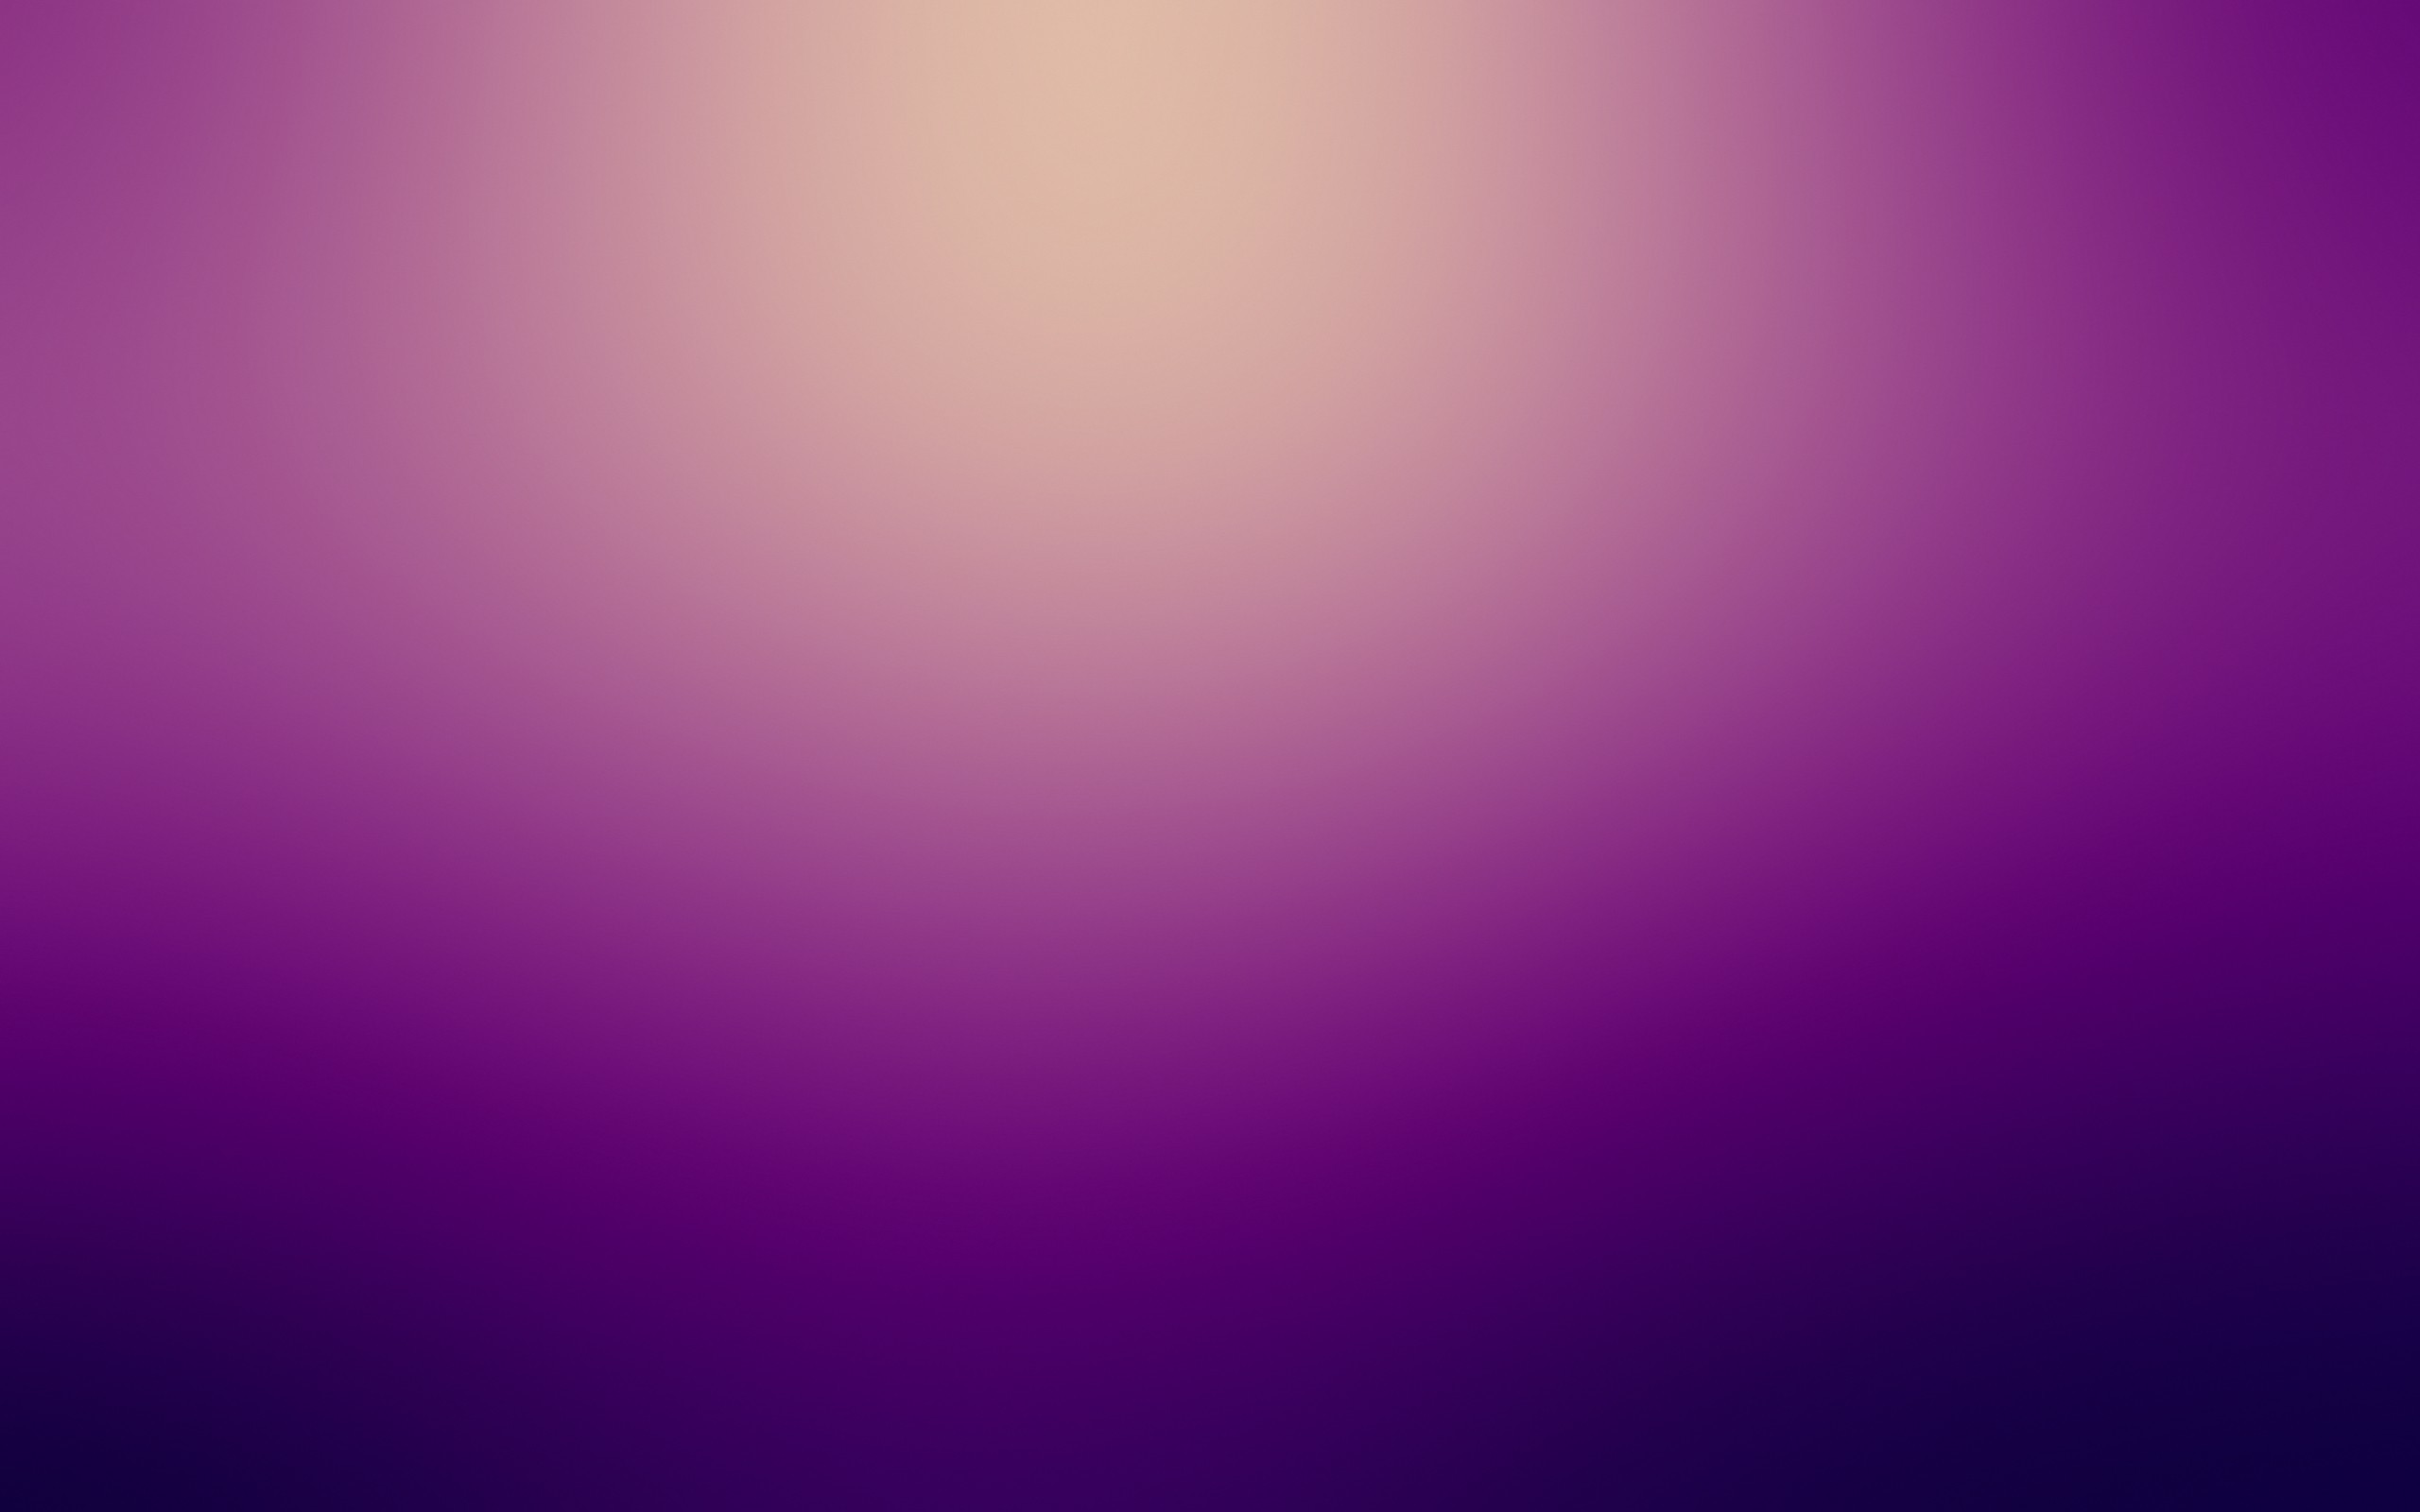 2560x1600 Solid Bright Purple Background Solid purple background.